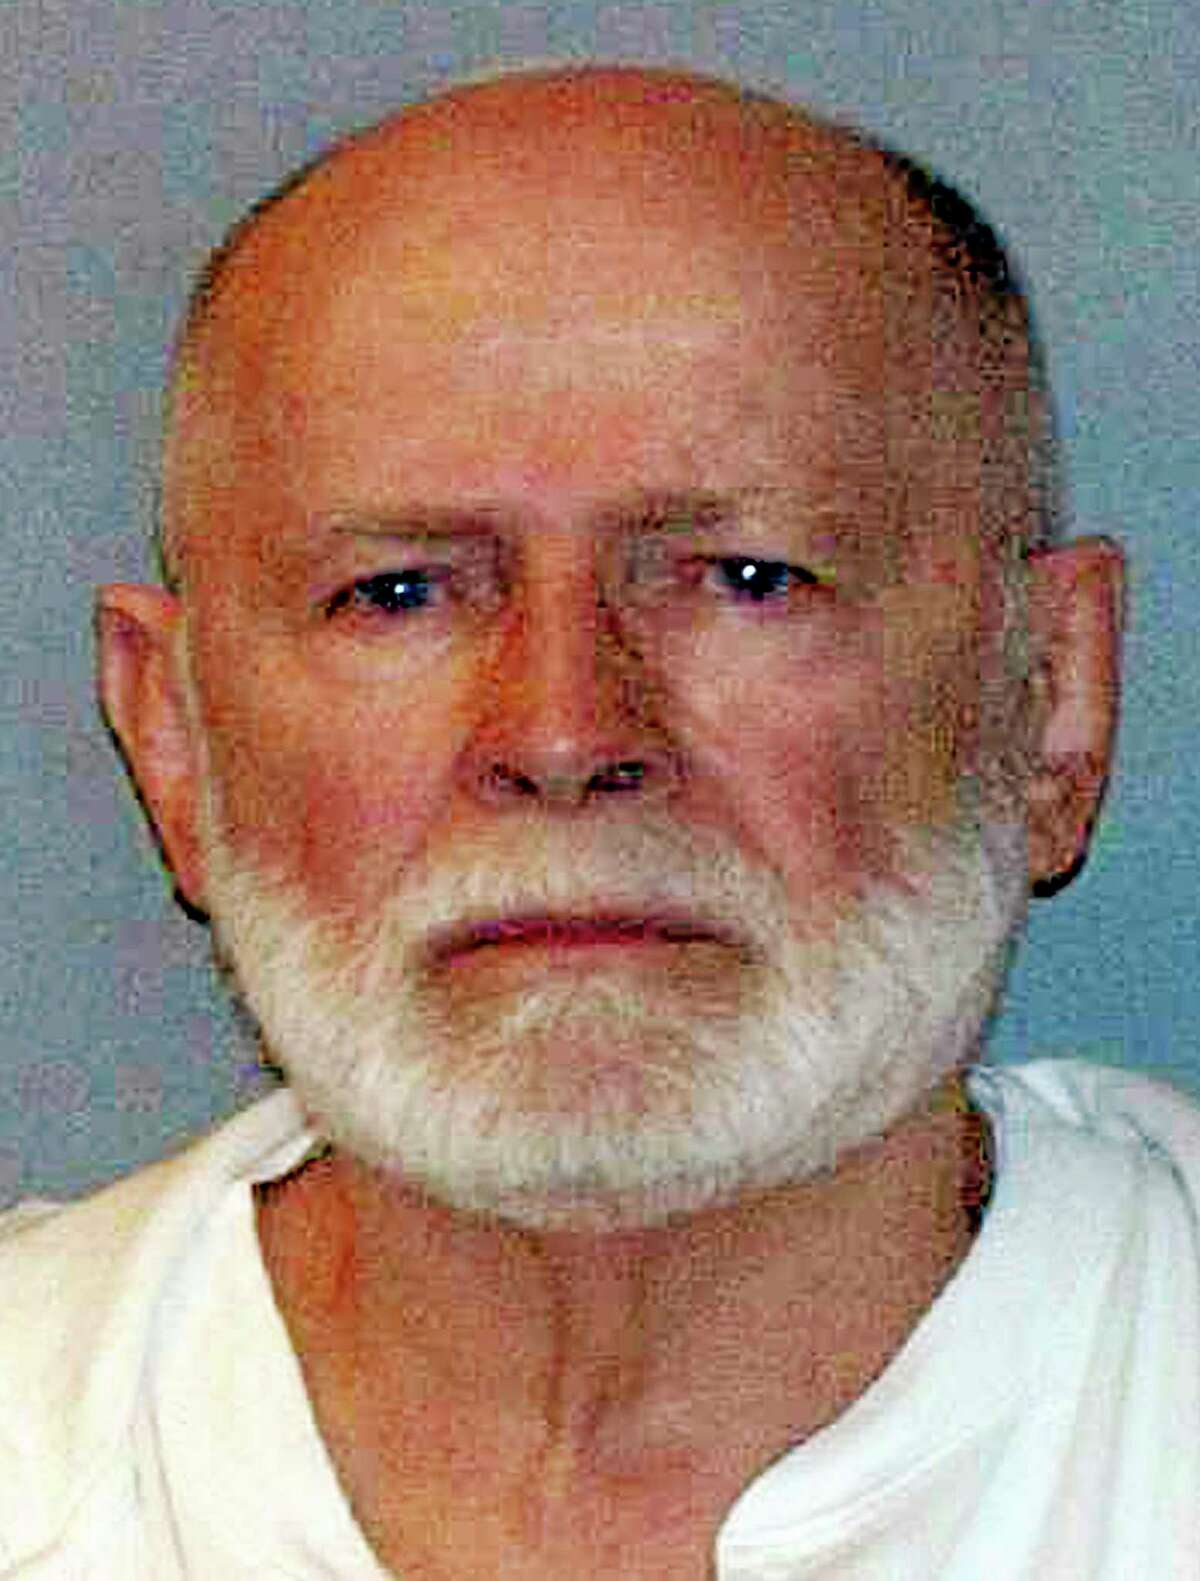 """FILE - This June 23, 2011 file photo shows a booking photo provided by the U.S. Marshals Service shows James """"Whitey"""" Bulger, captured in Santa Monica, Calif., after 16 years on the run."""